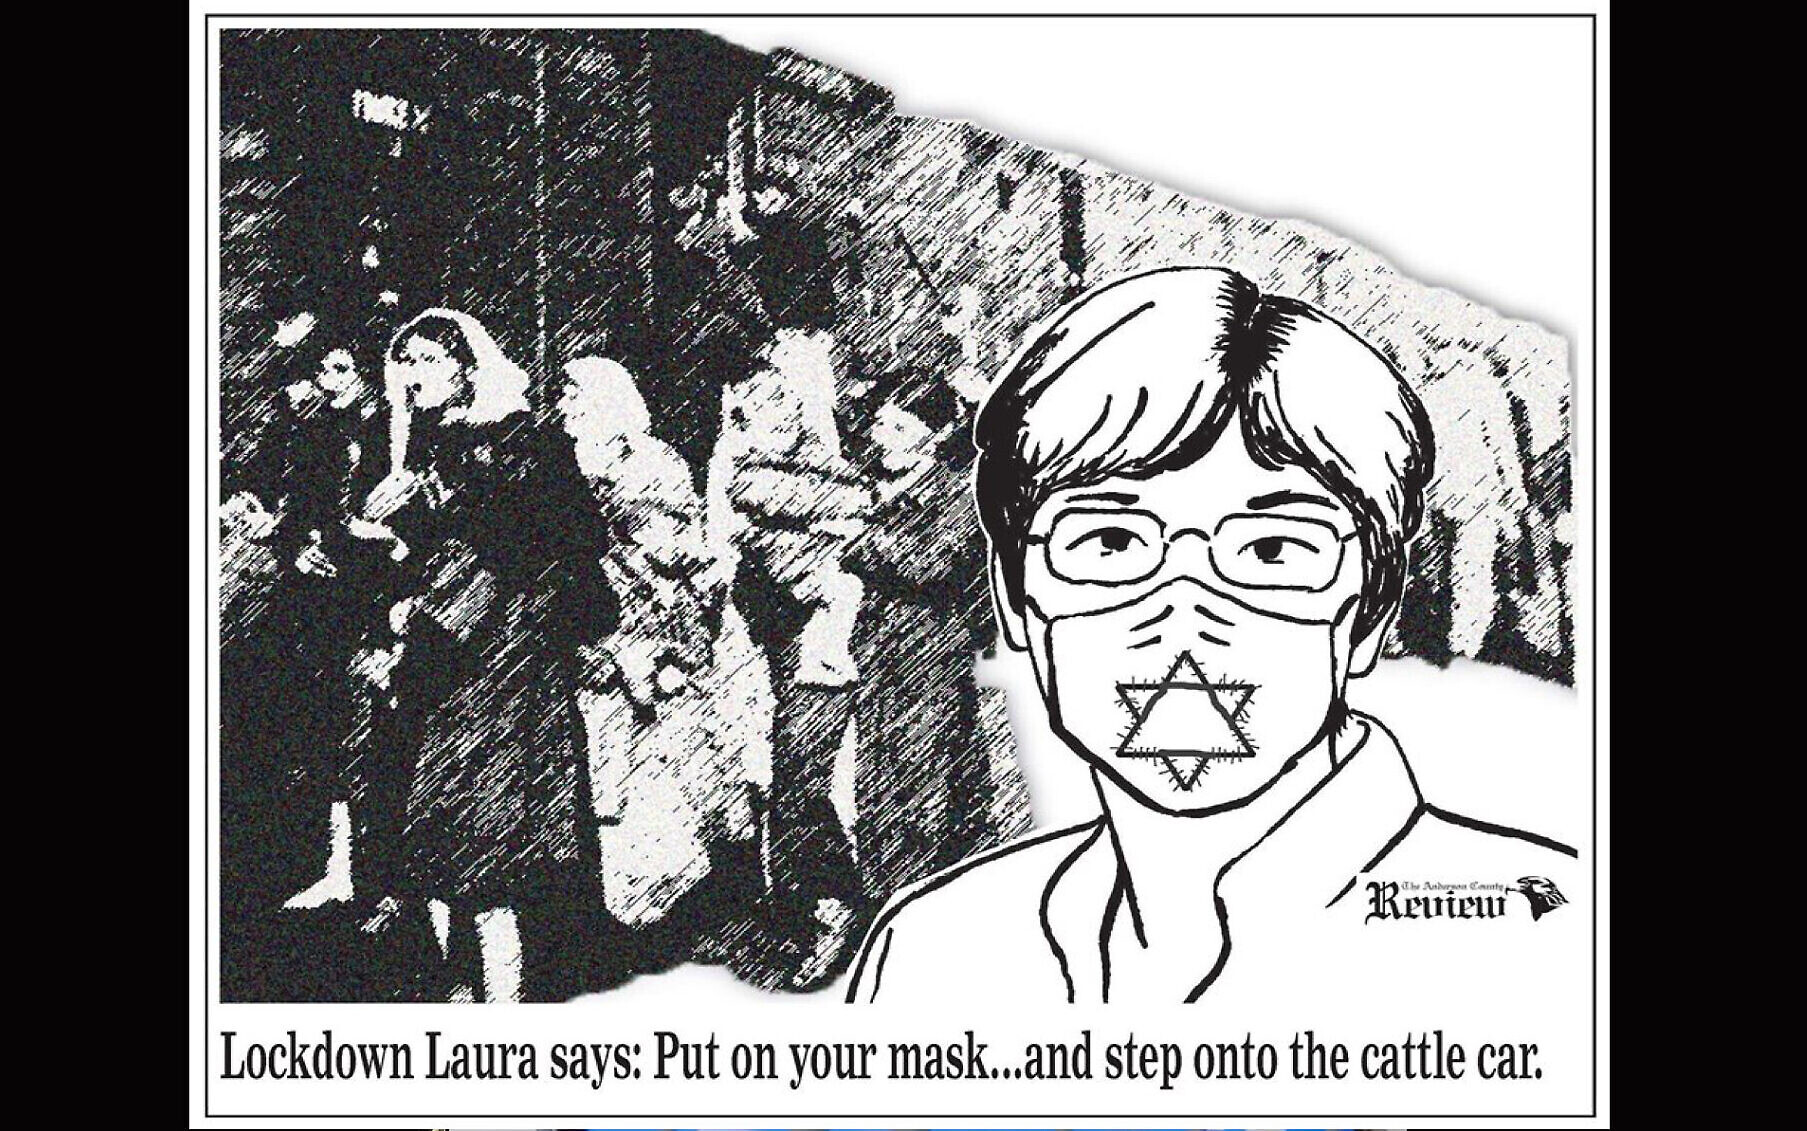 Kansas paper owner apologizes for tying mask rule, Holocaust